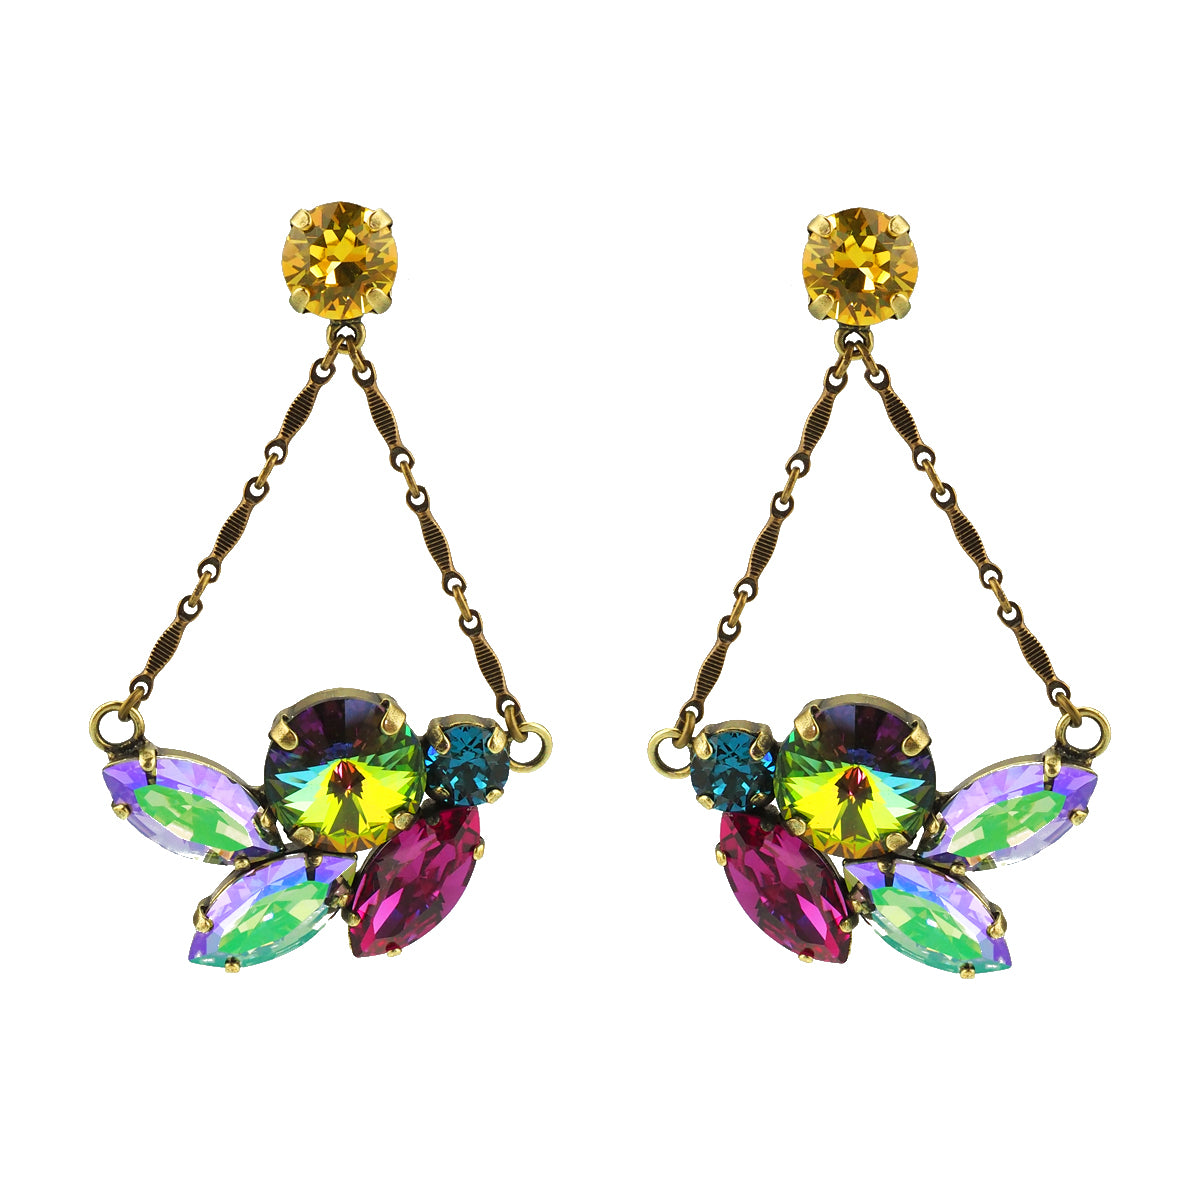 Carousal Earrings - Multi